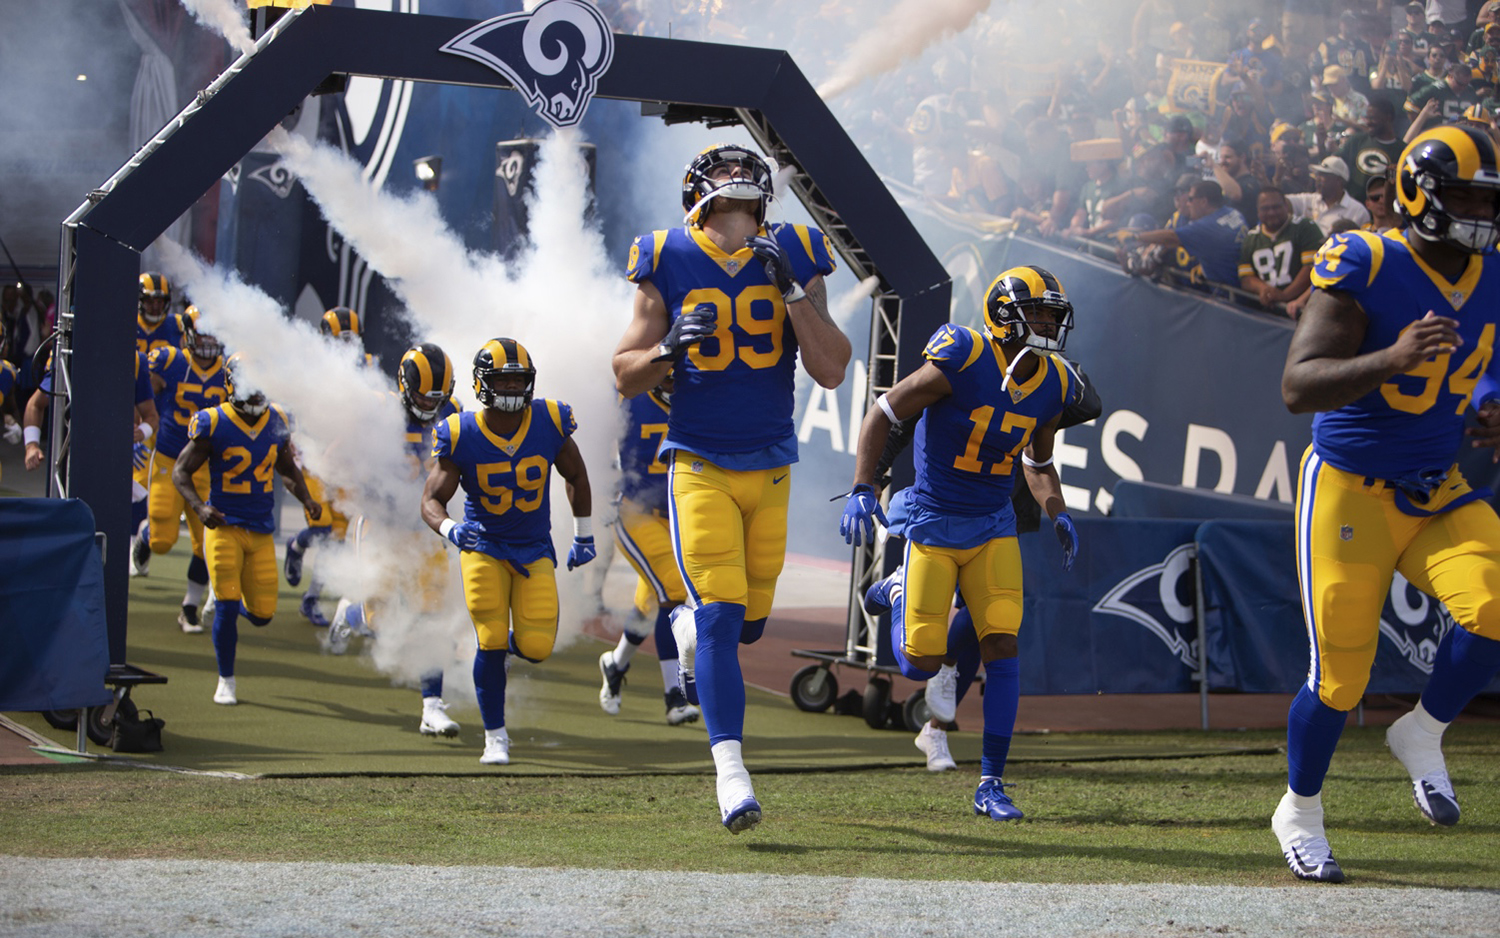 Cedars-Sinai and the LA Rams: Partners in Health teaser image